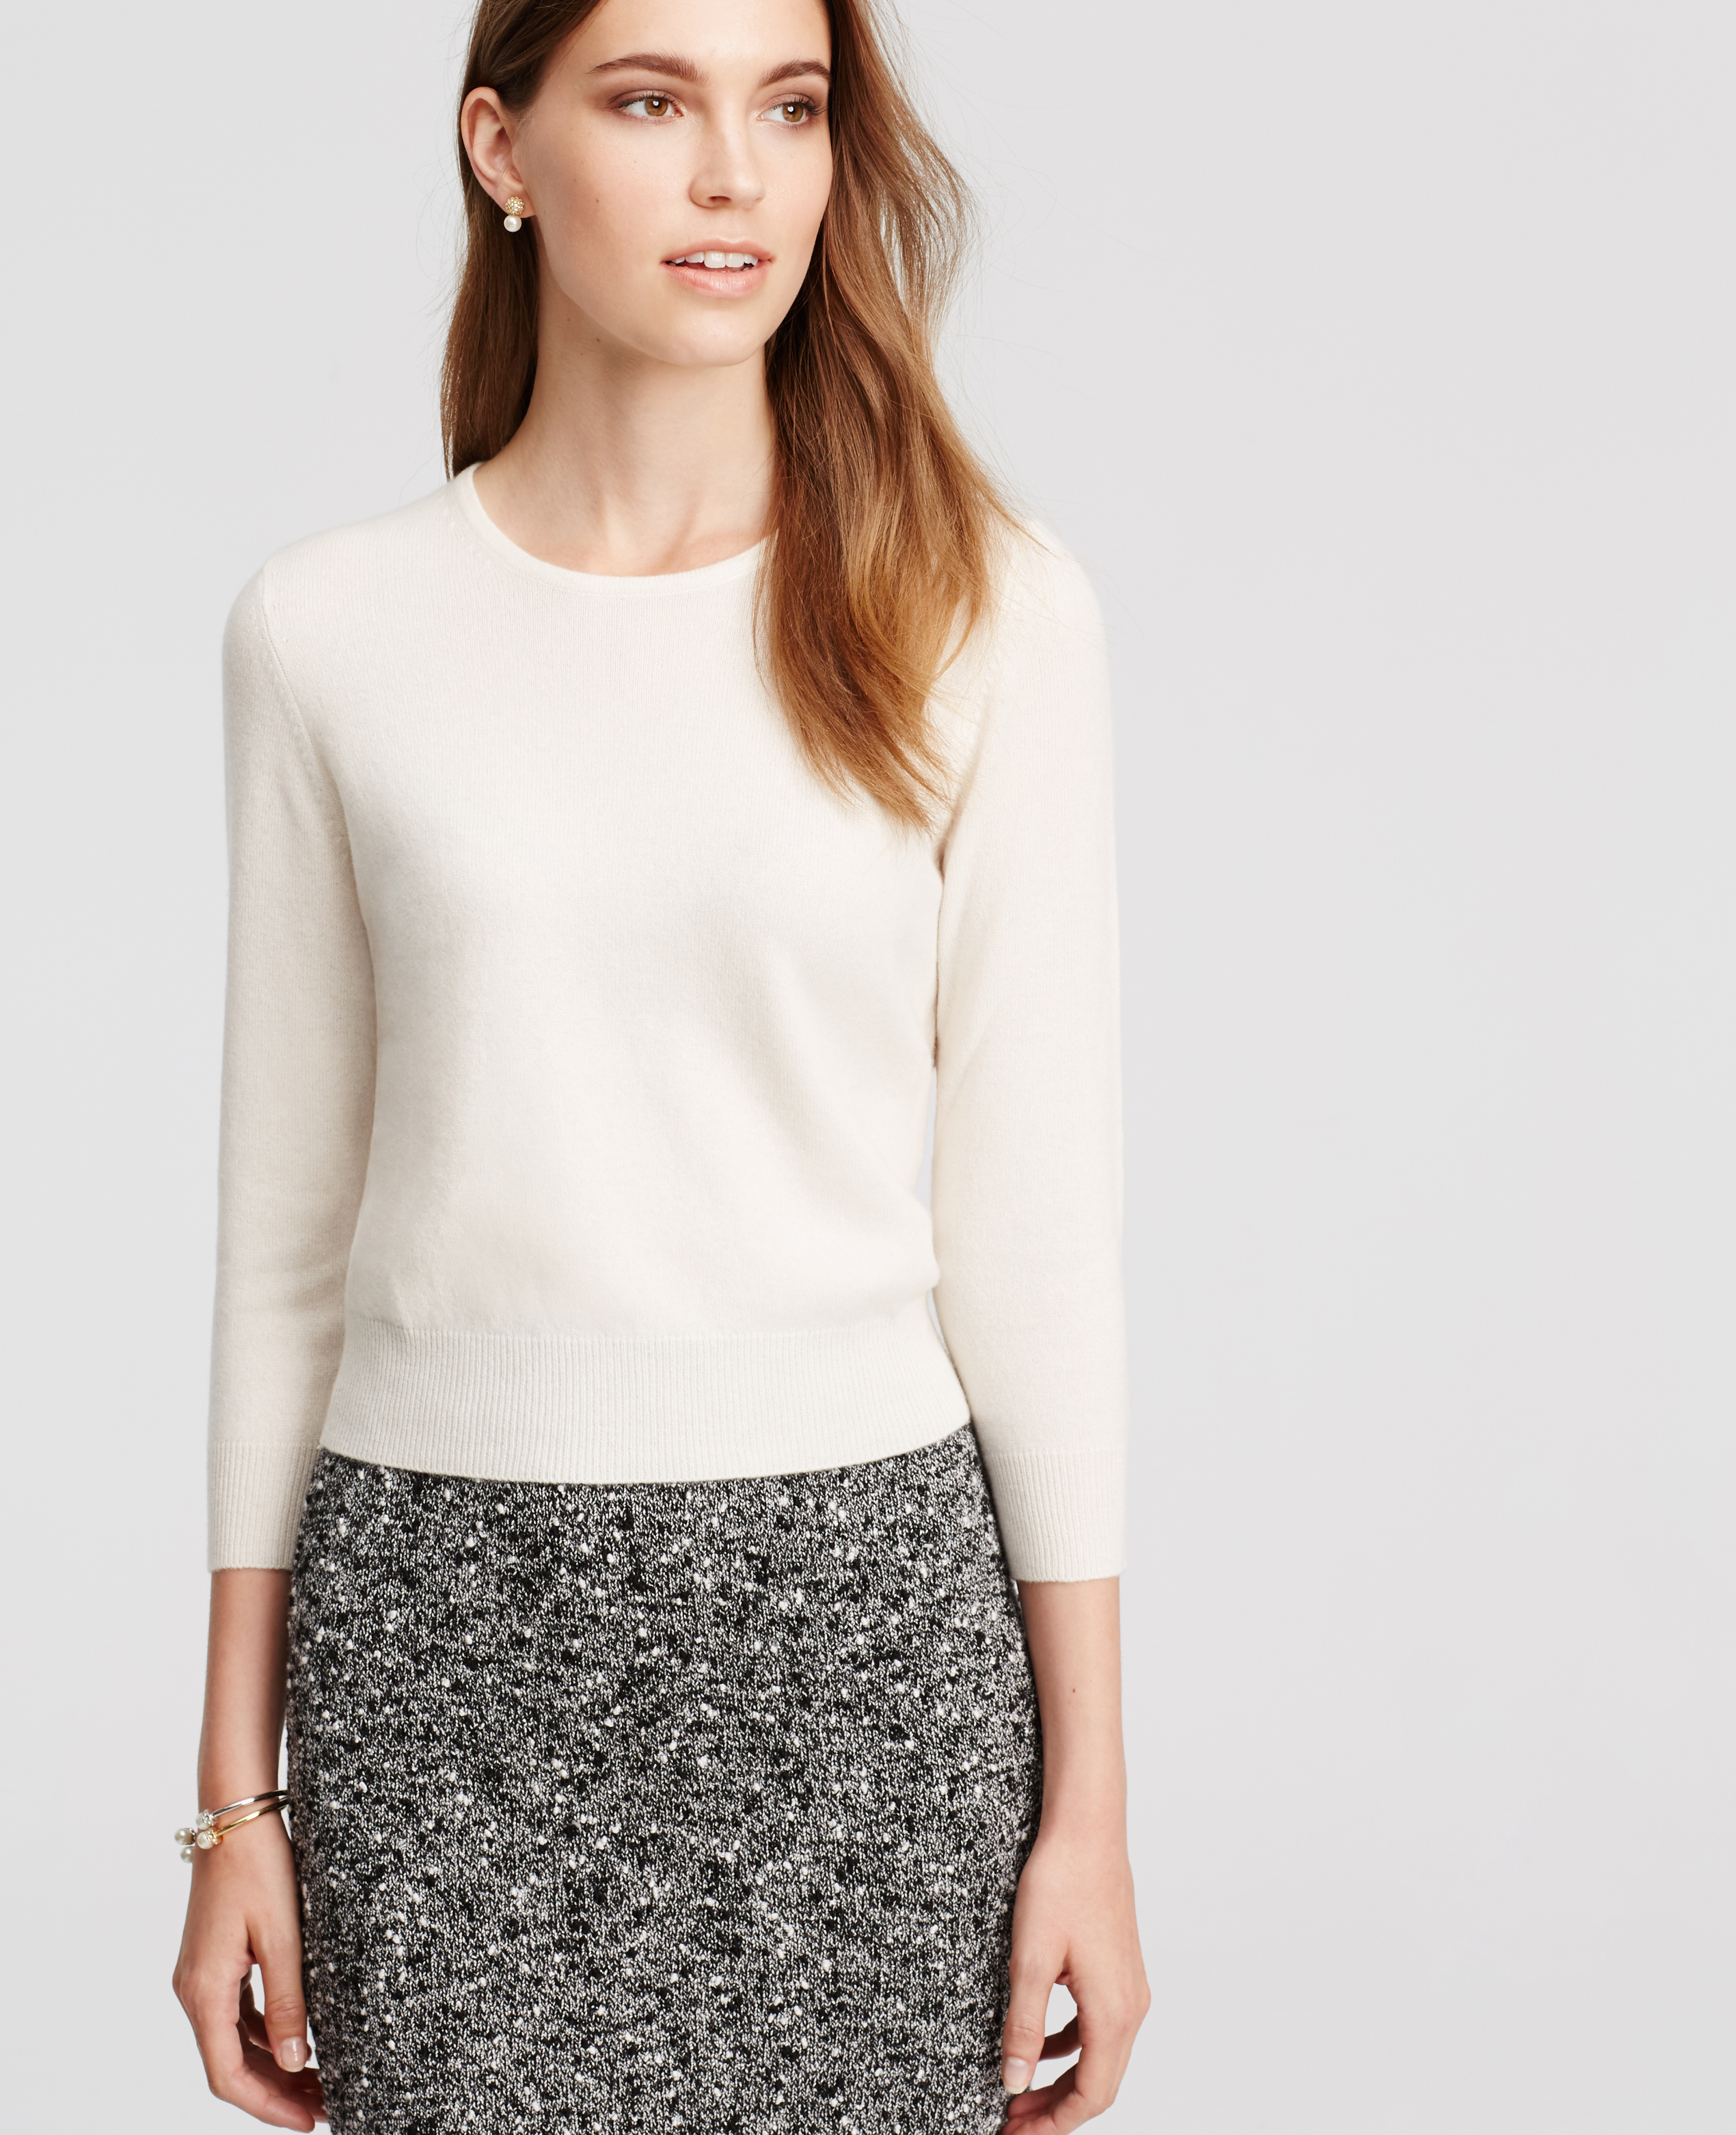 Ann taylor Cropped Cashmere Sweater in White | Lyst